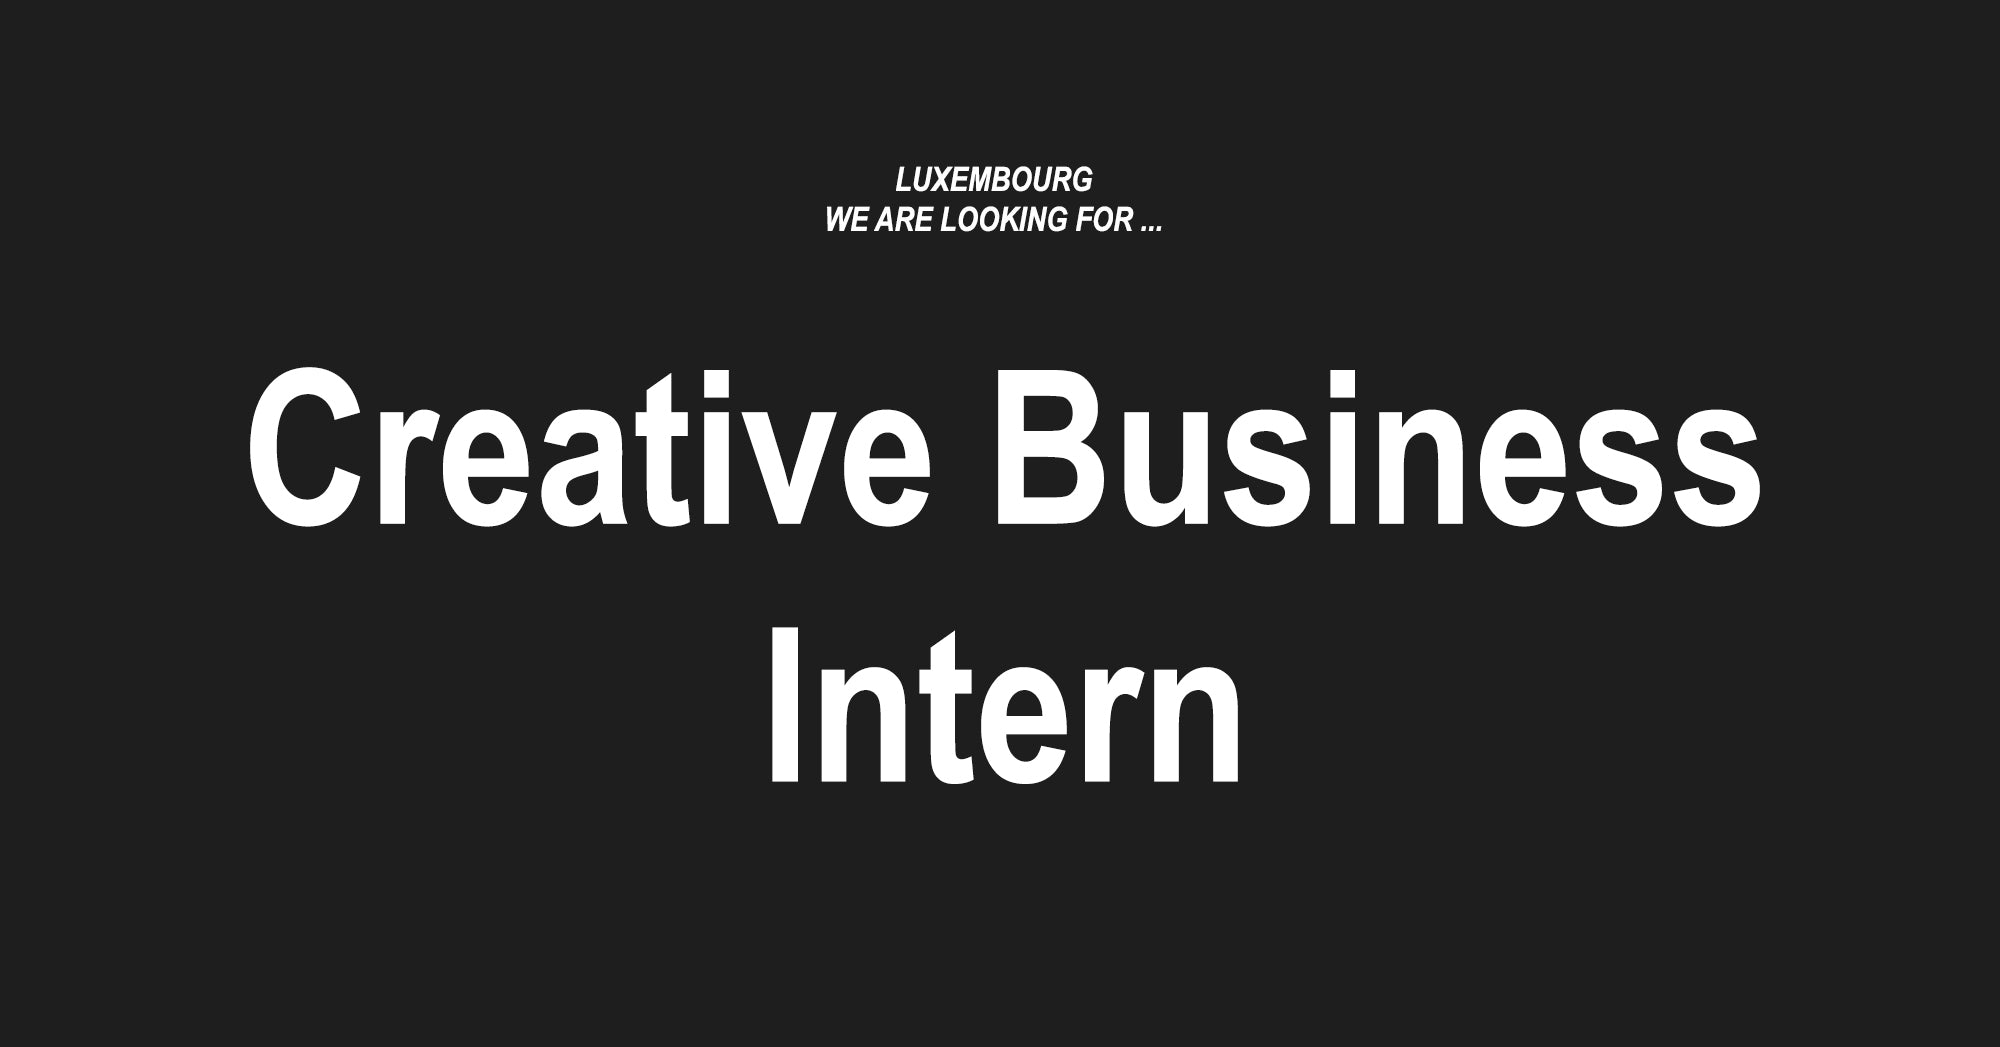 LUXEMBOURG | We're looking for interns!